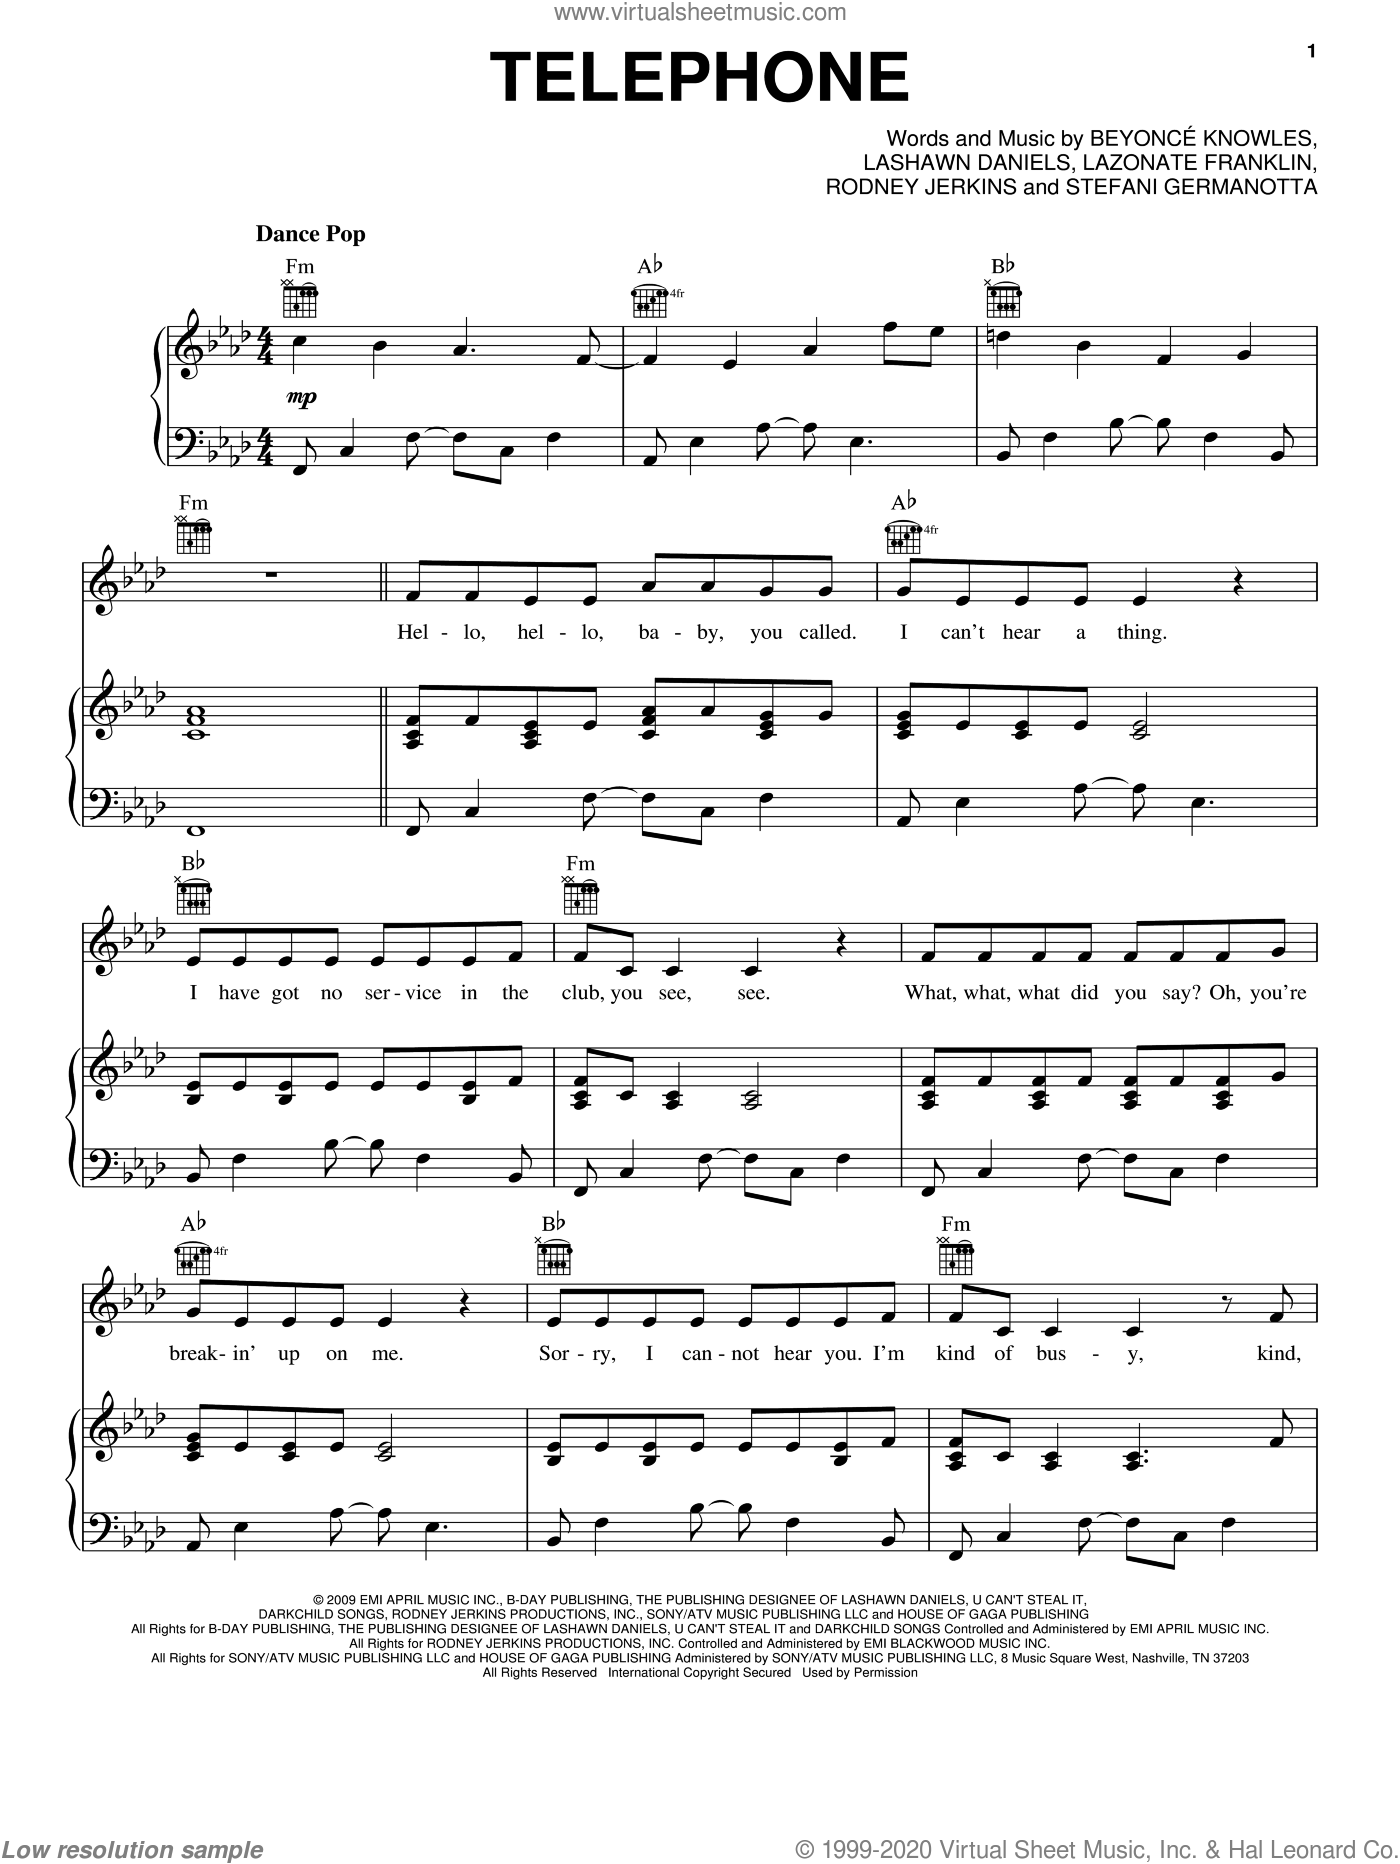 Telephone sheet music for voice, piano or guitar by Lady GaGa featuring Beyonce, Lady GaGa, Beyonce, Lady Gaga, LaShawn Daniels, Lazonate Franklin and Rodney Jerkins, intermediate skill level